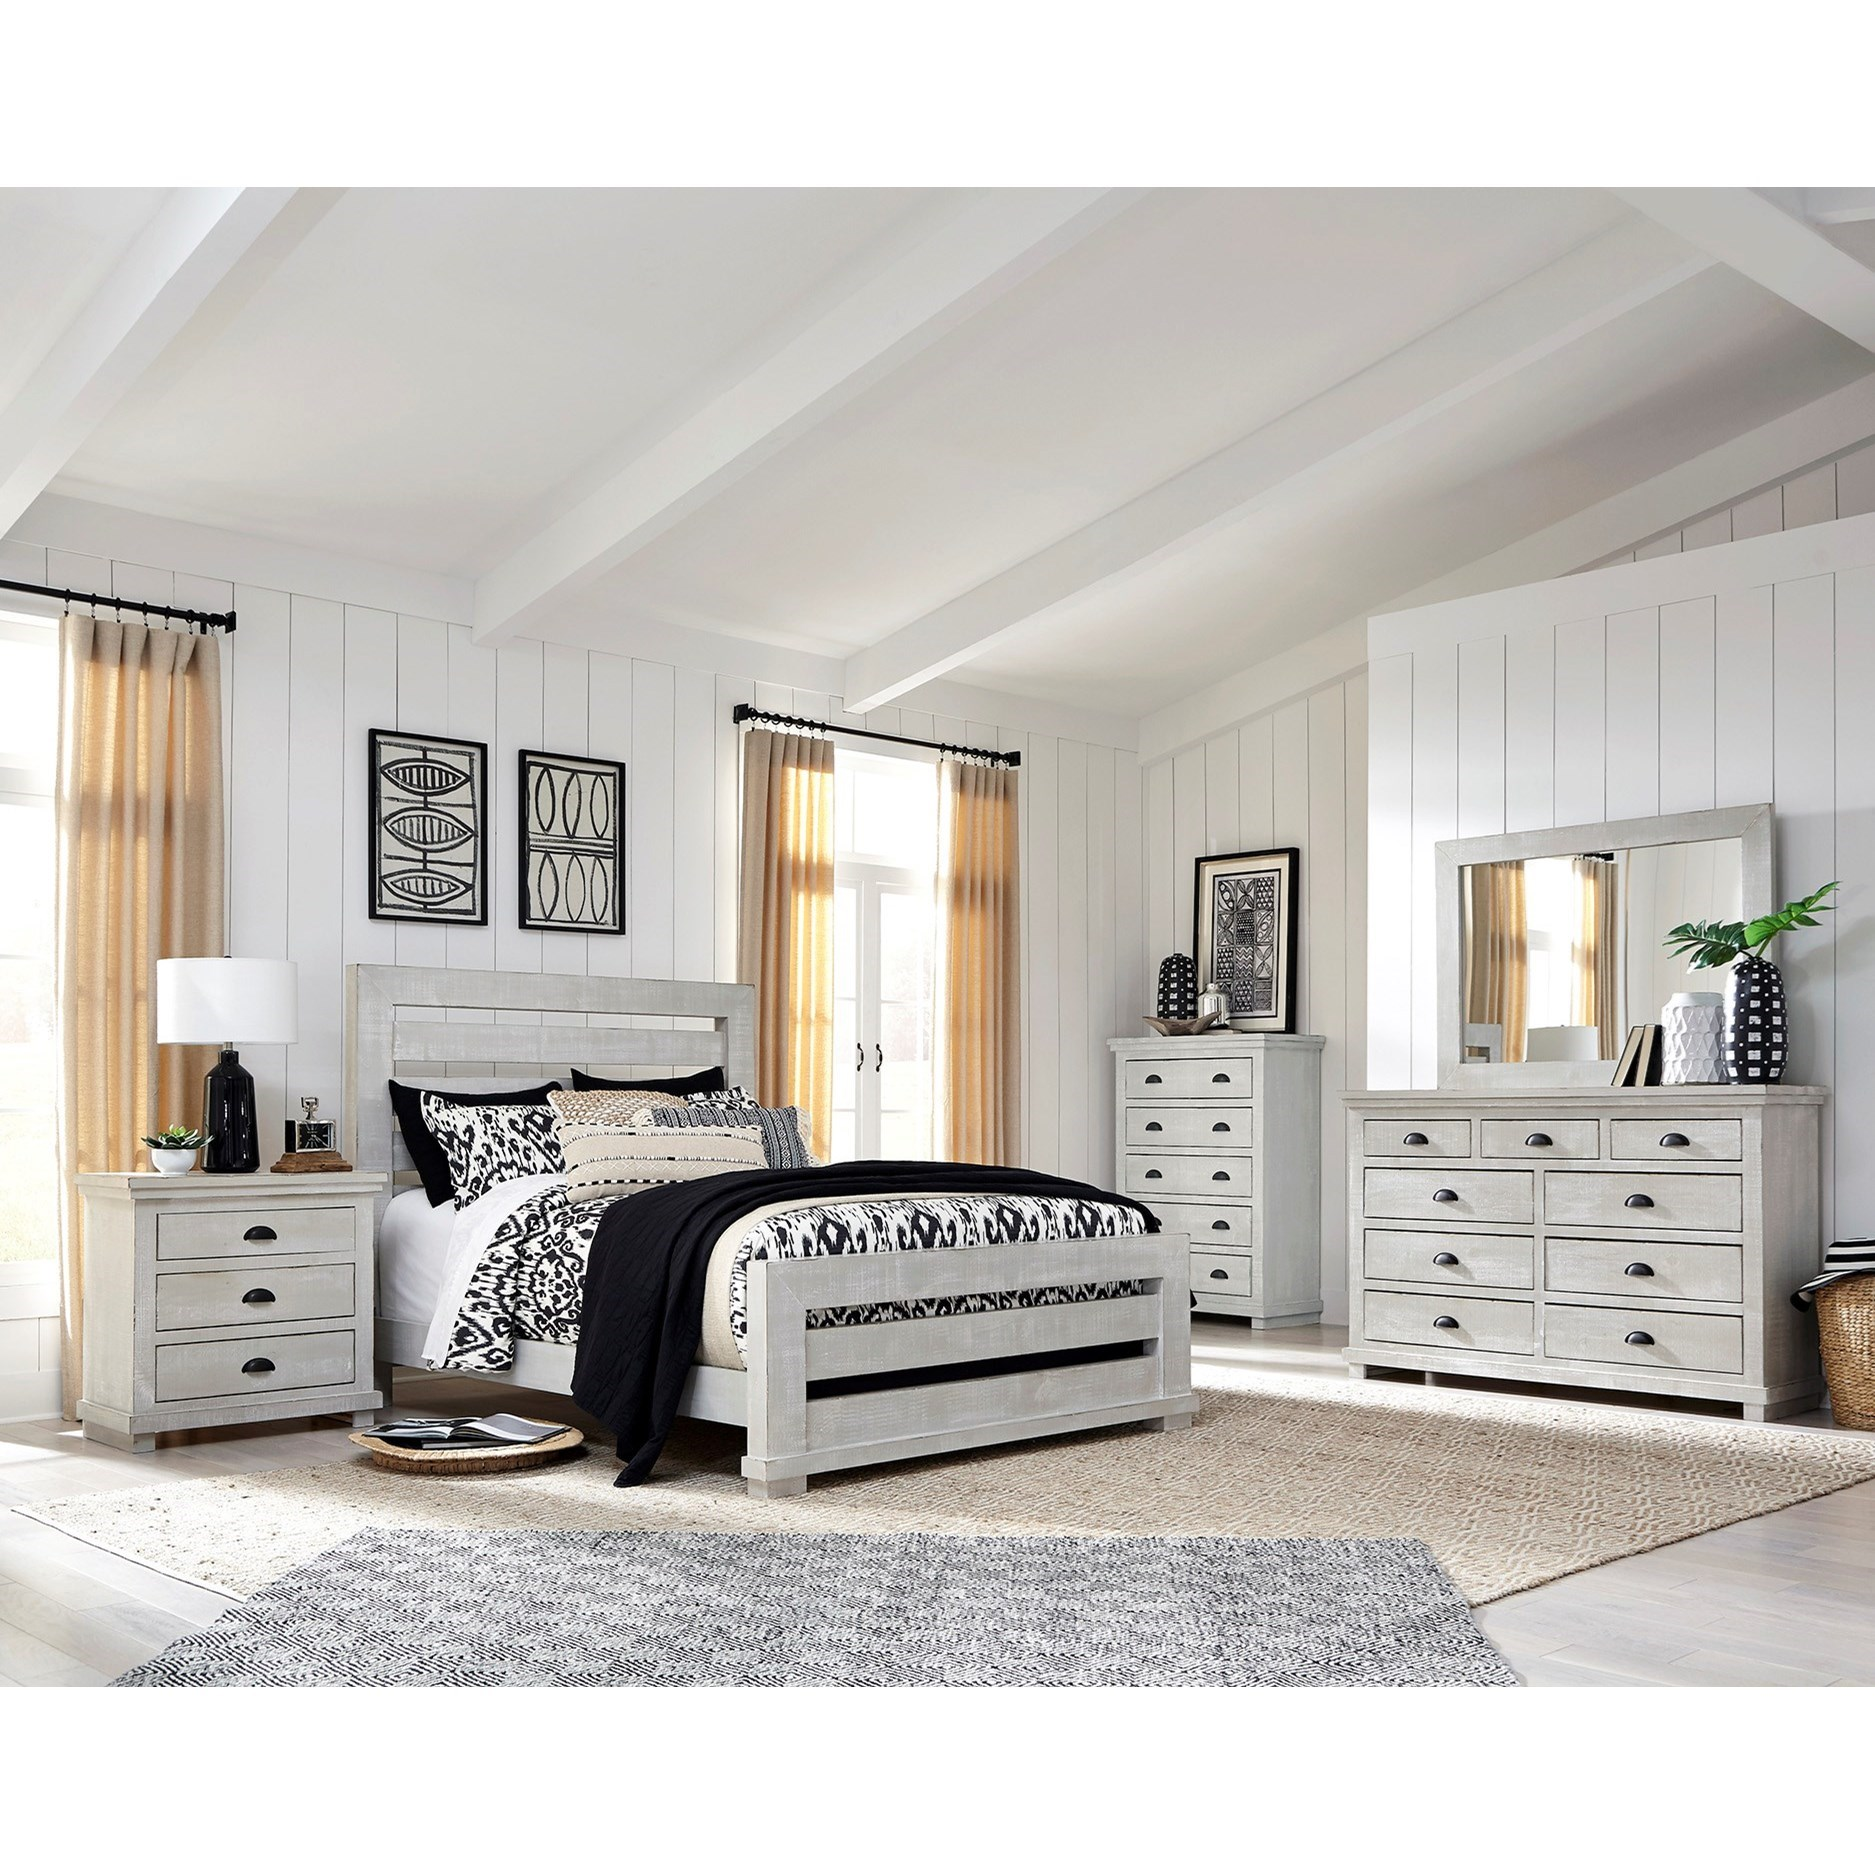 Willow California King Bedroom Group by Progressive Furniture at Bullard Furniture